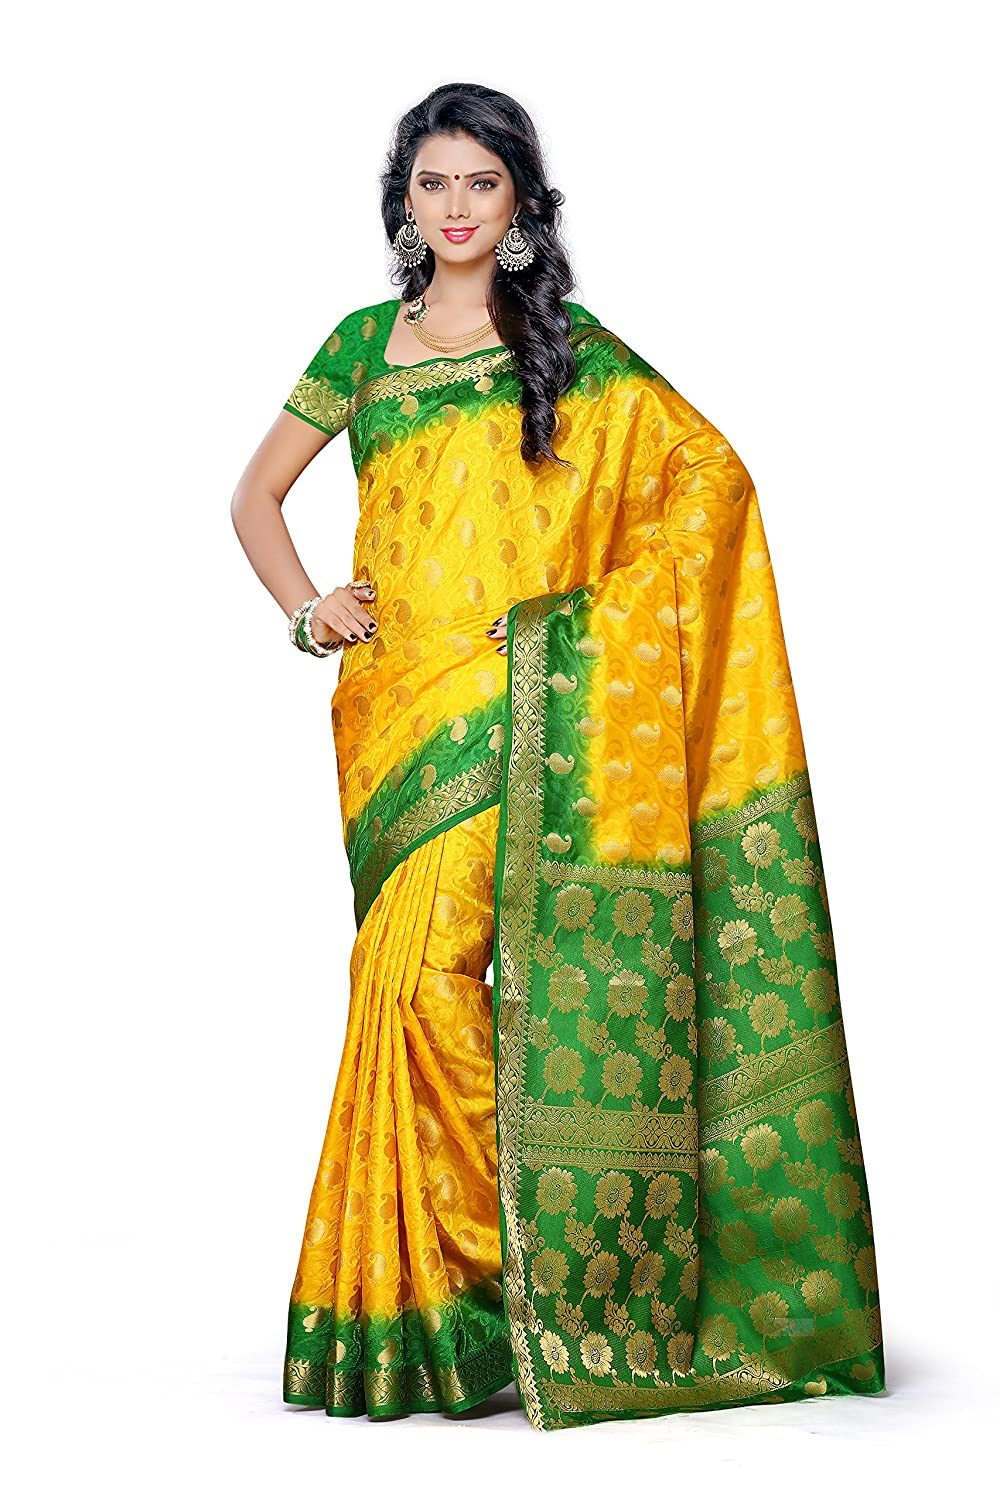 What To Wear This Wedding Season!! Upto 70% off On Wedding Season Fashion By Amazon | Mimosa Women's Traditional Art Silk Saree Kanjivaram Style With Blouse Color:Gold(3305-103-2D-GLD ) @ Rs.1,499